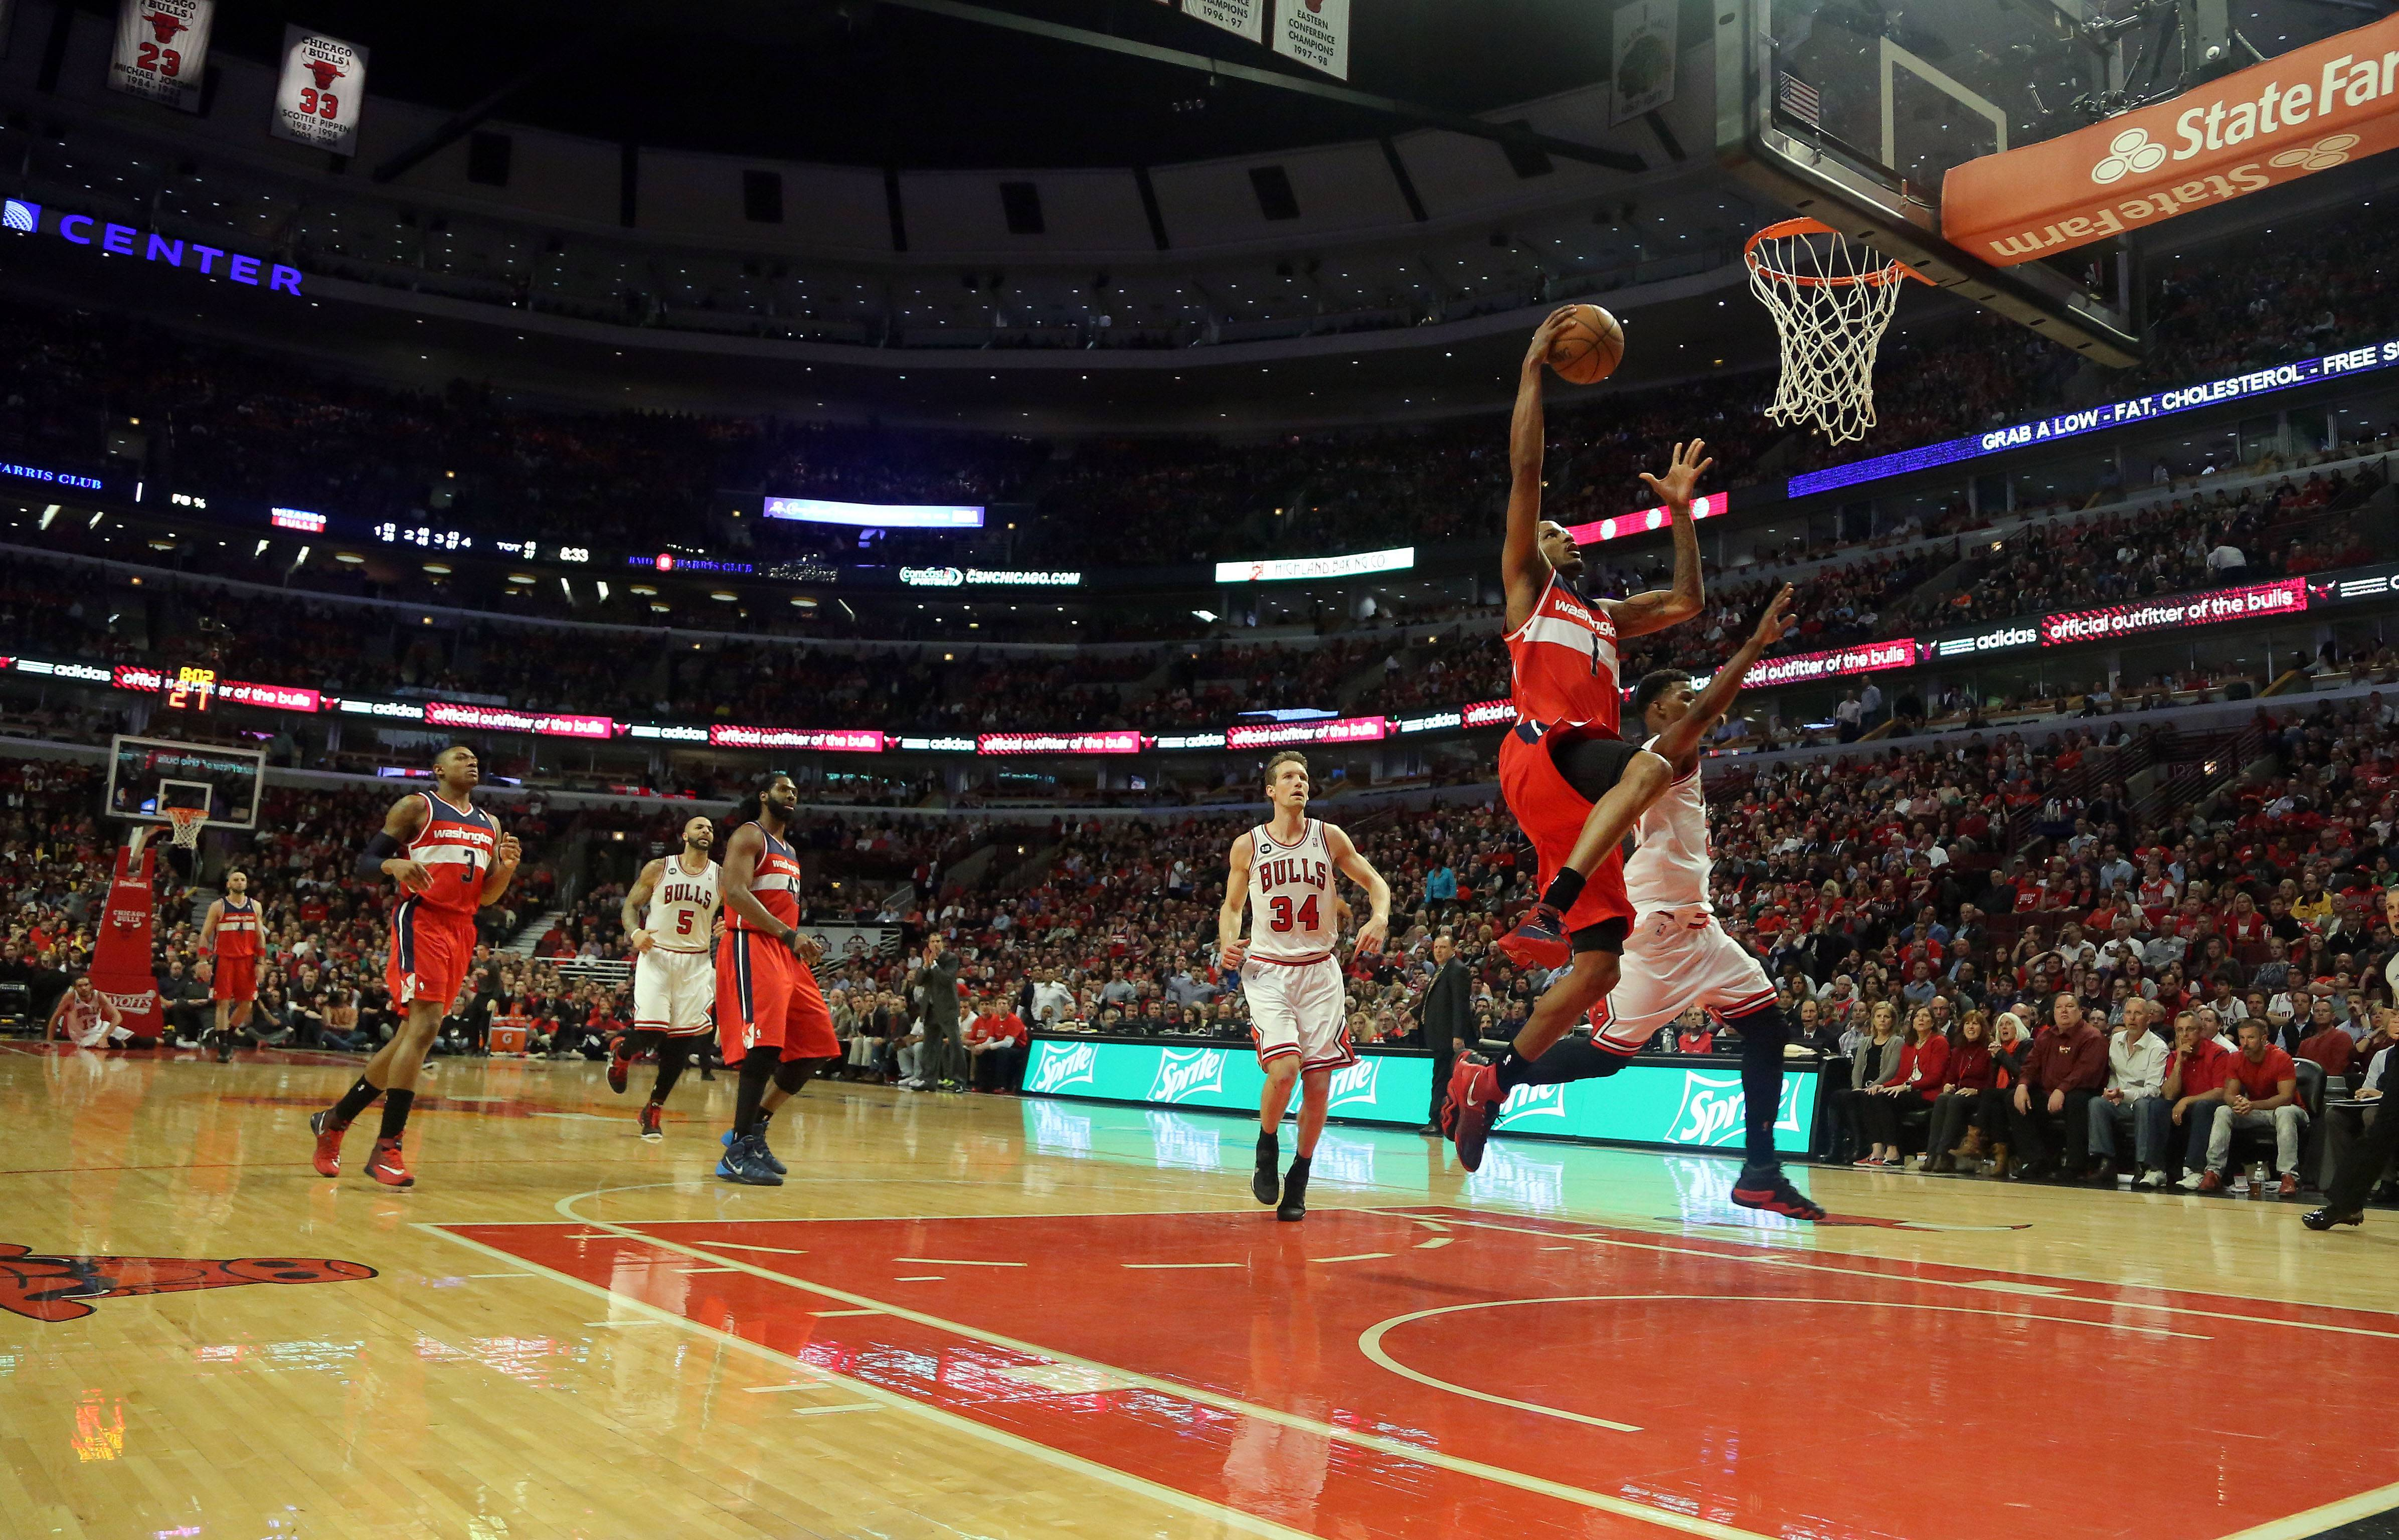 Washington Wizards forward Trevor Ariza drives in for a dunk.